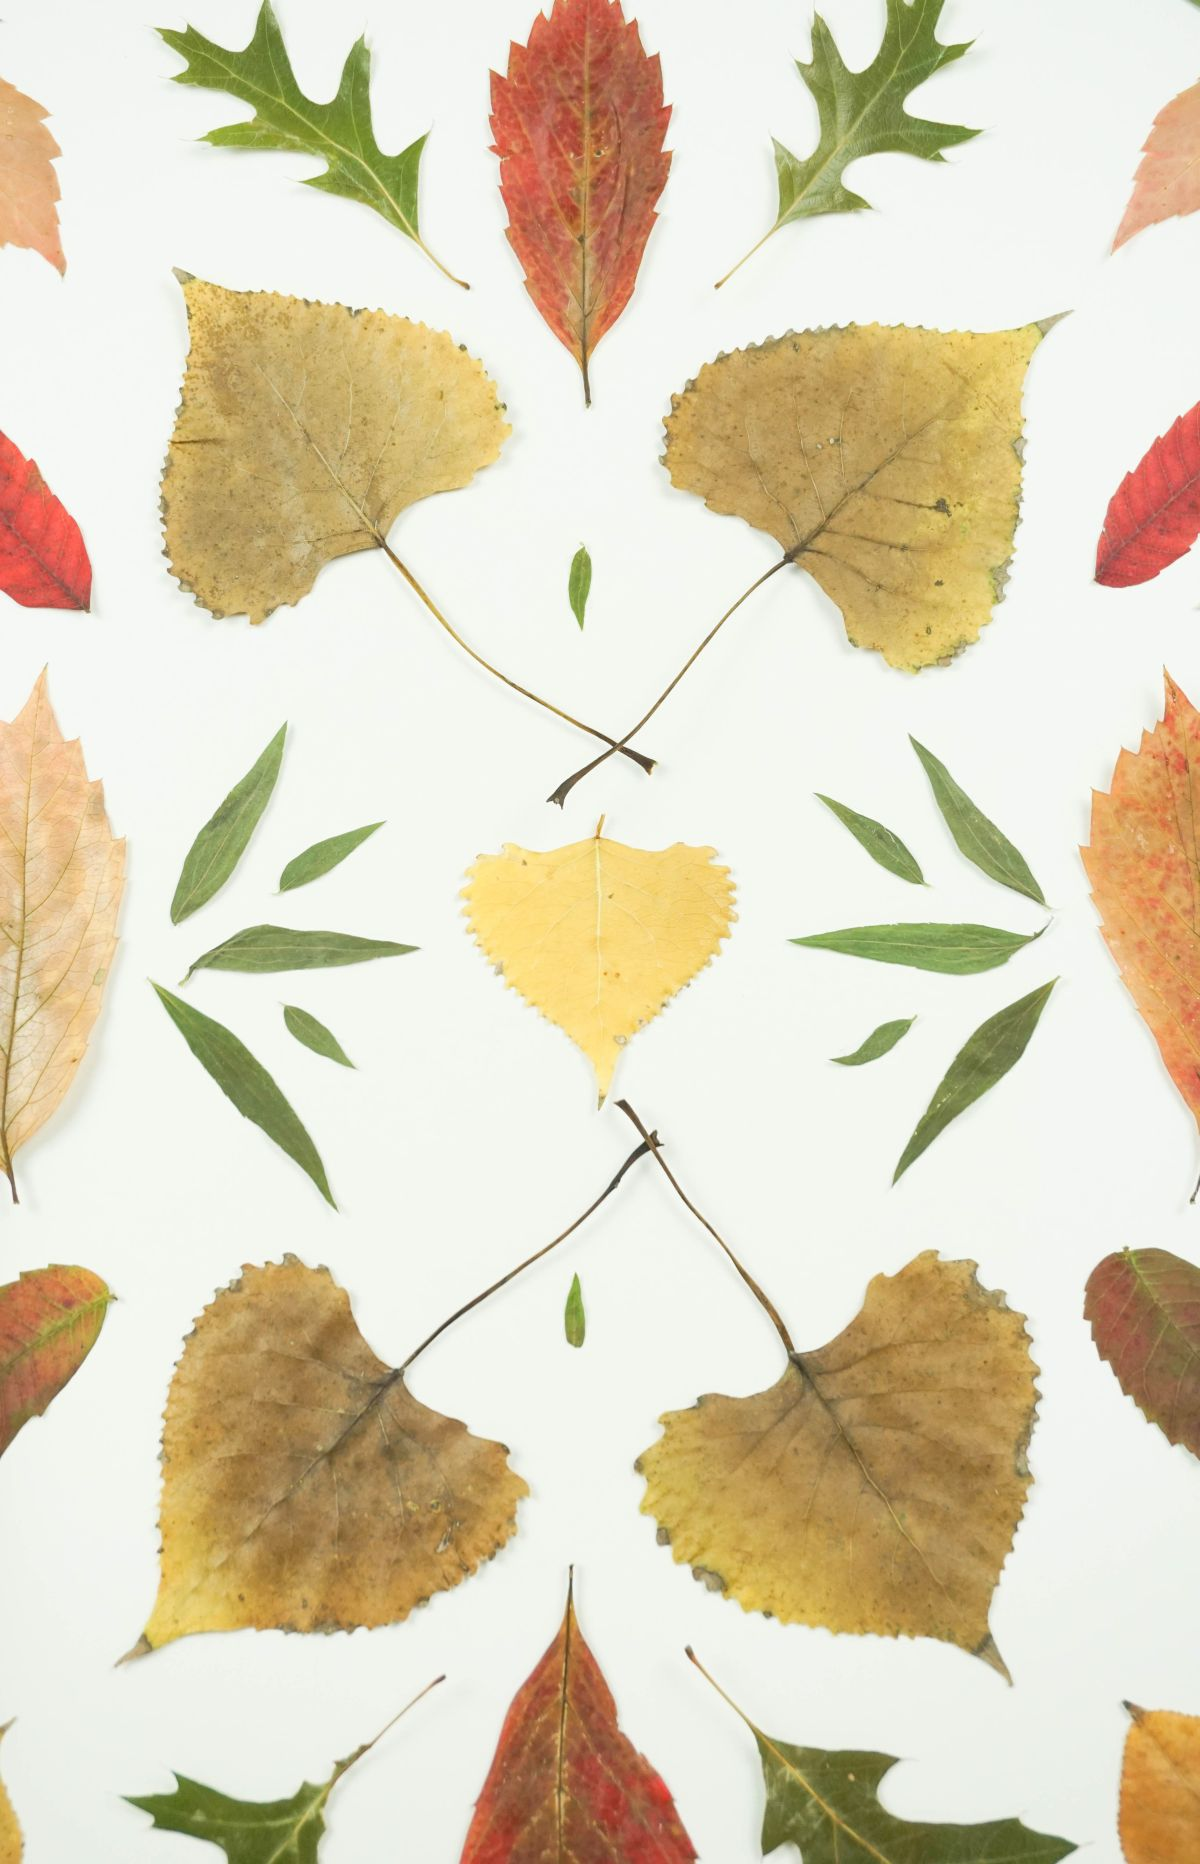 Autumnal Pressed Leaf Art Closer Look